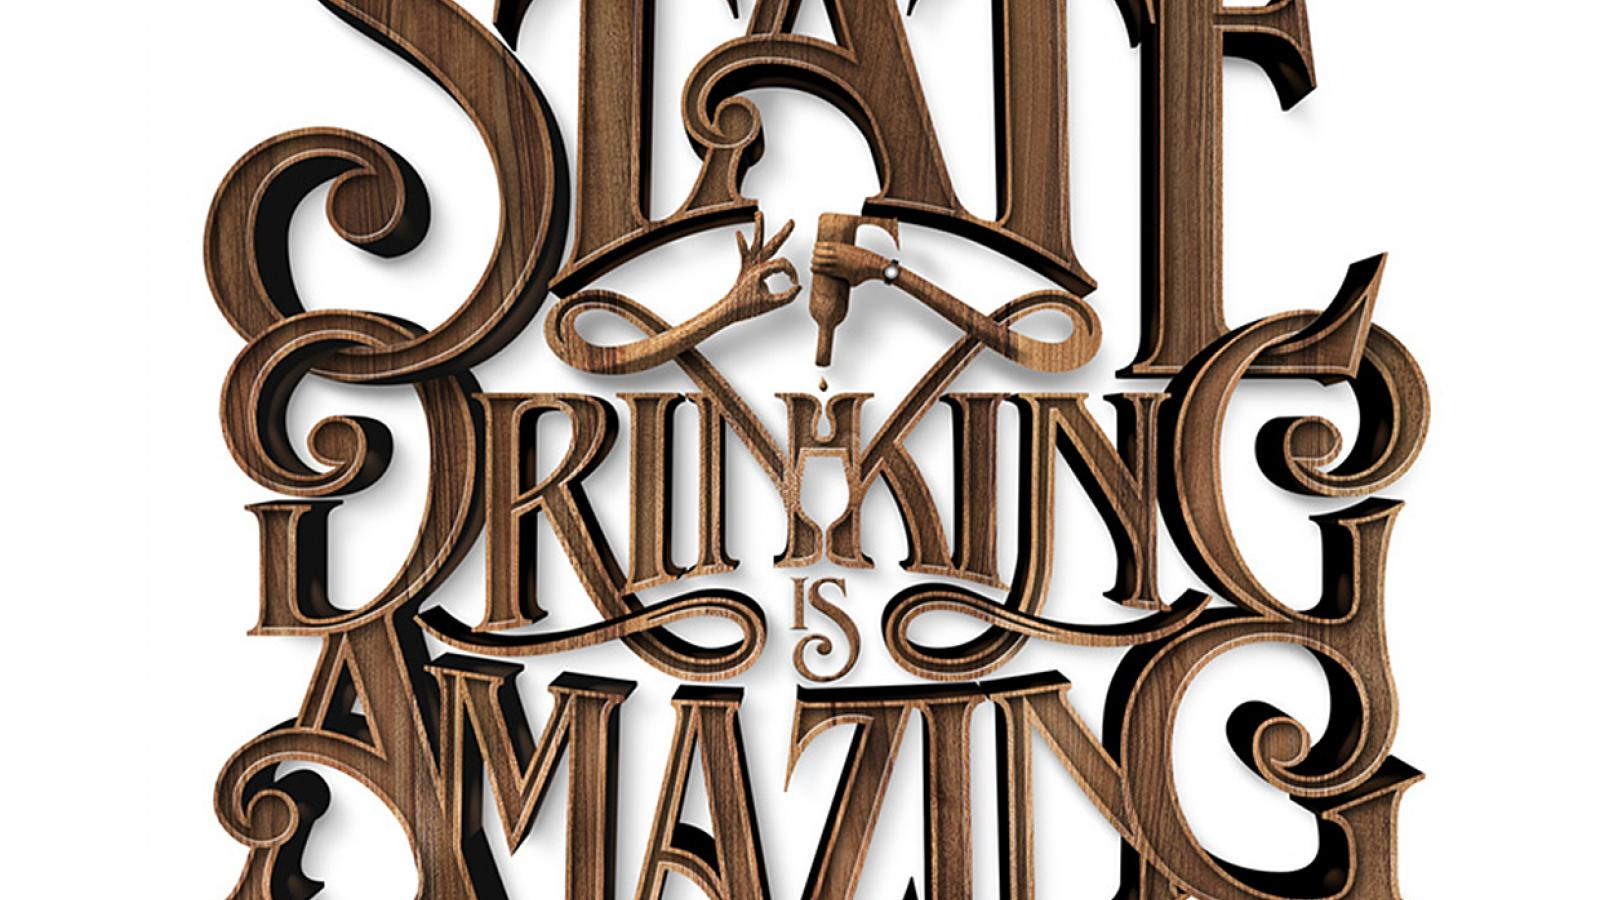 Sublime Lettering Works by Luke Lucas